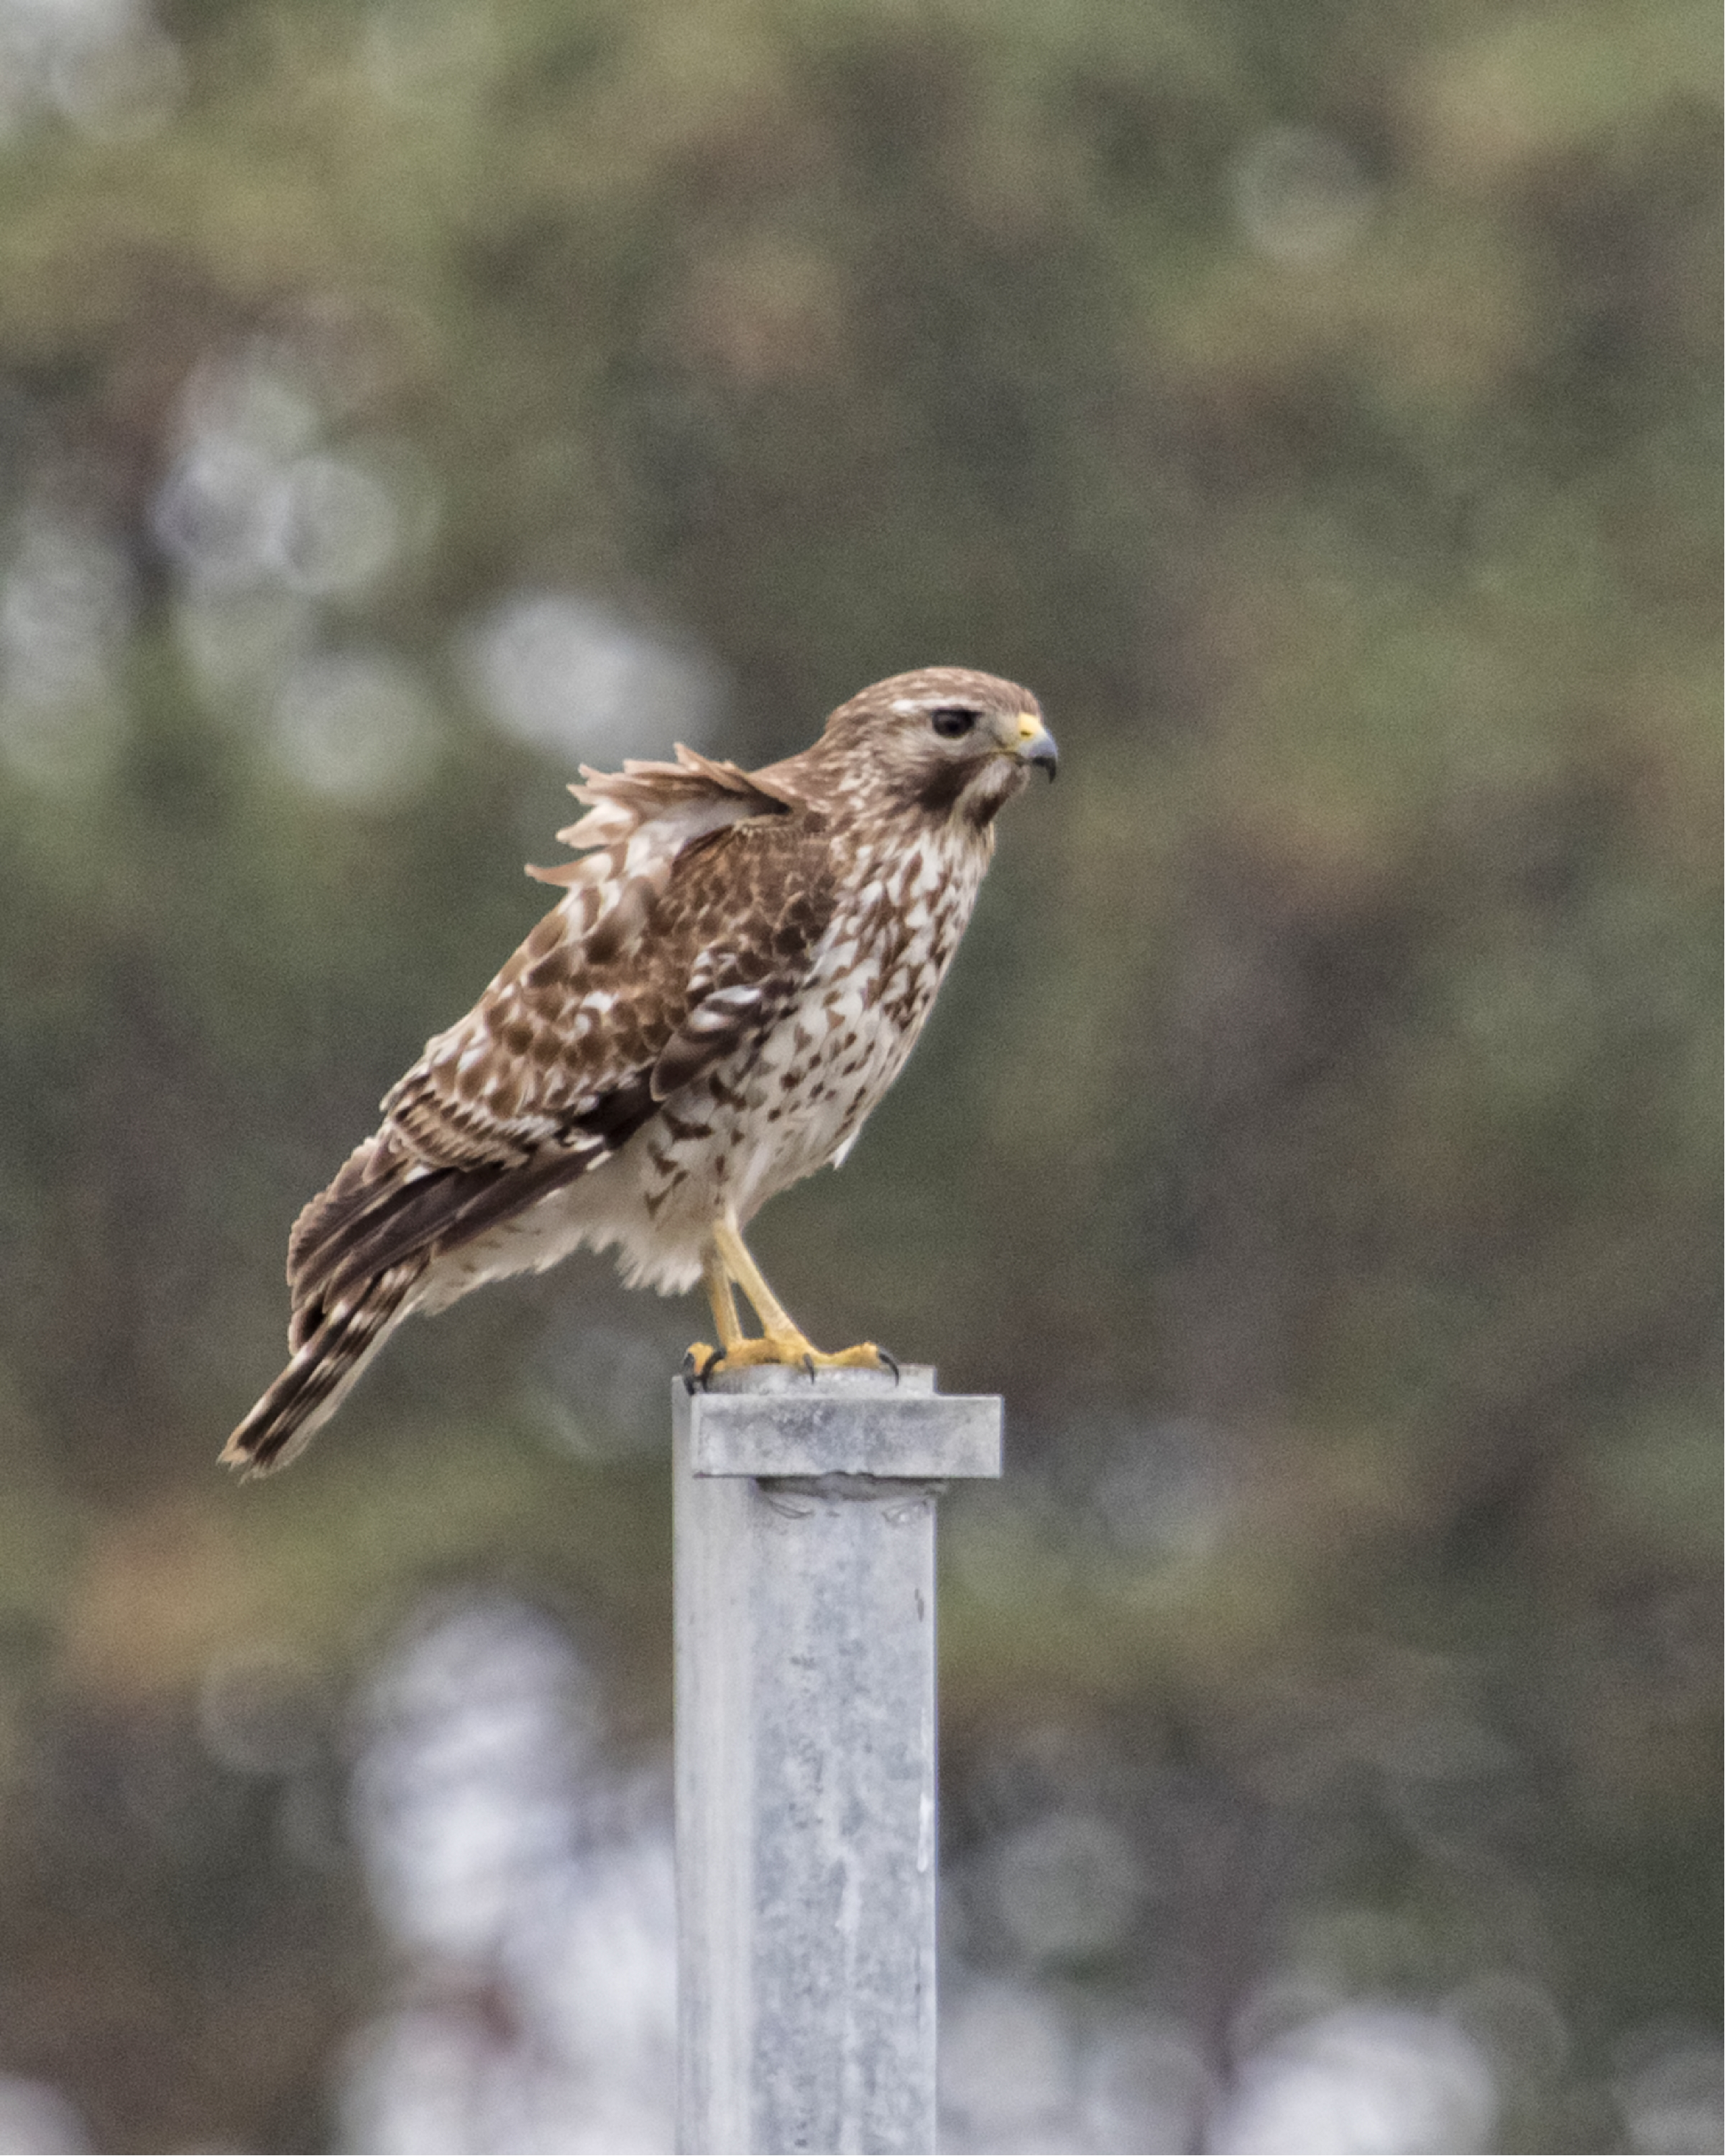 The hawk lands on the dock hoist and surveys for possible breakfast. The birds take flight!